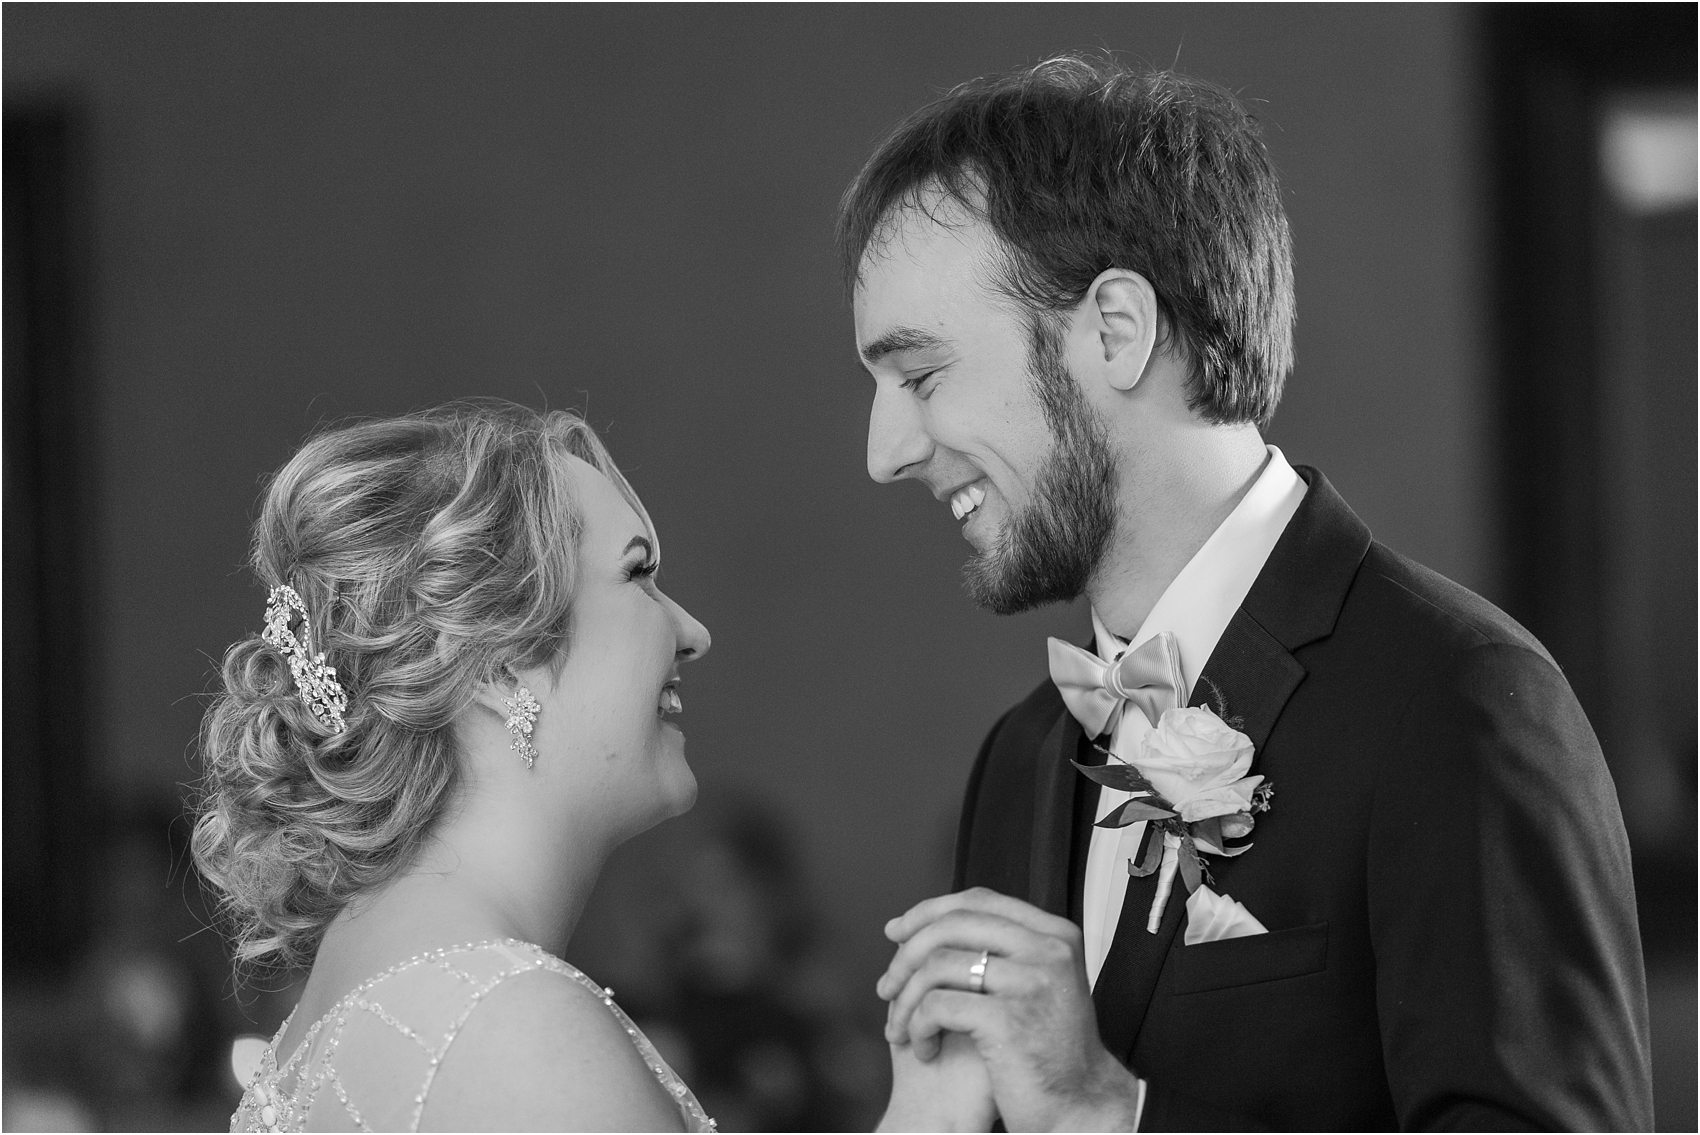 lord-of-the-rings-inspired-wedding-photos-at-crystal-gardens-in-howell-mi-by-courtney-carolyn-photography_0067.jpg